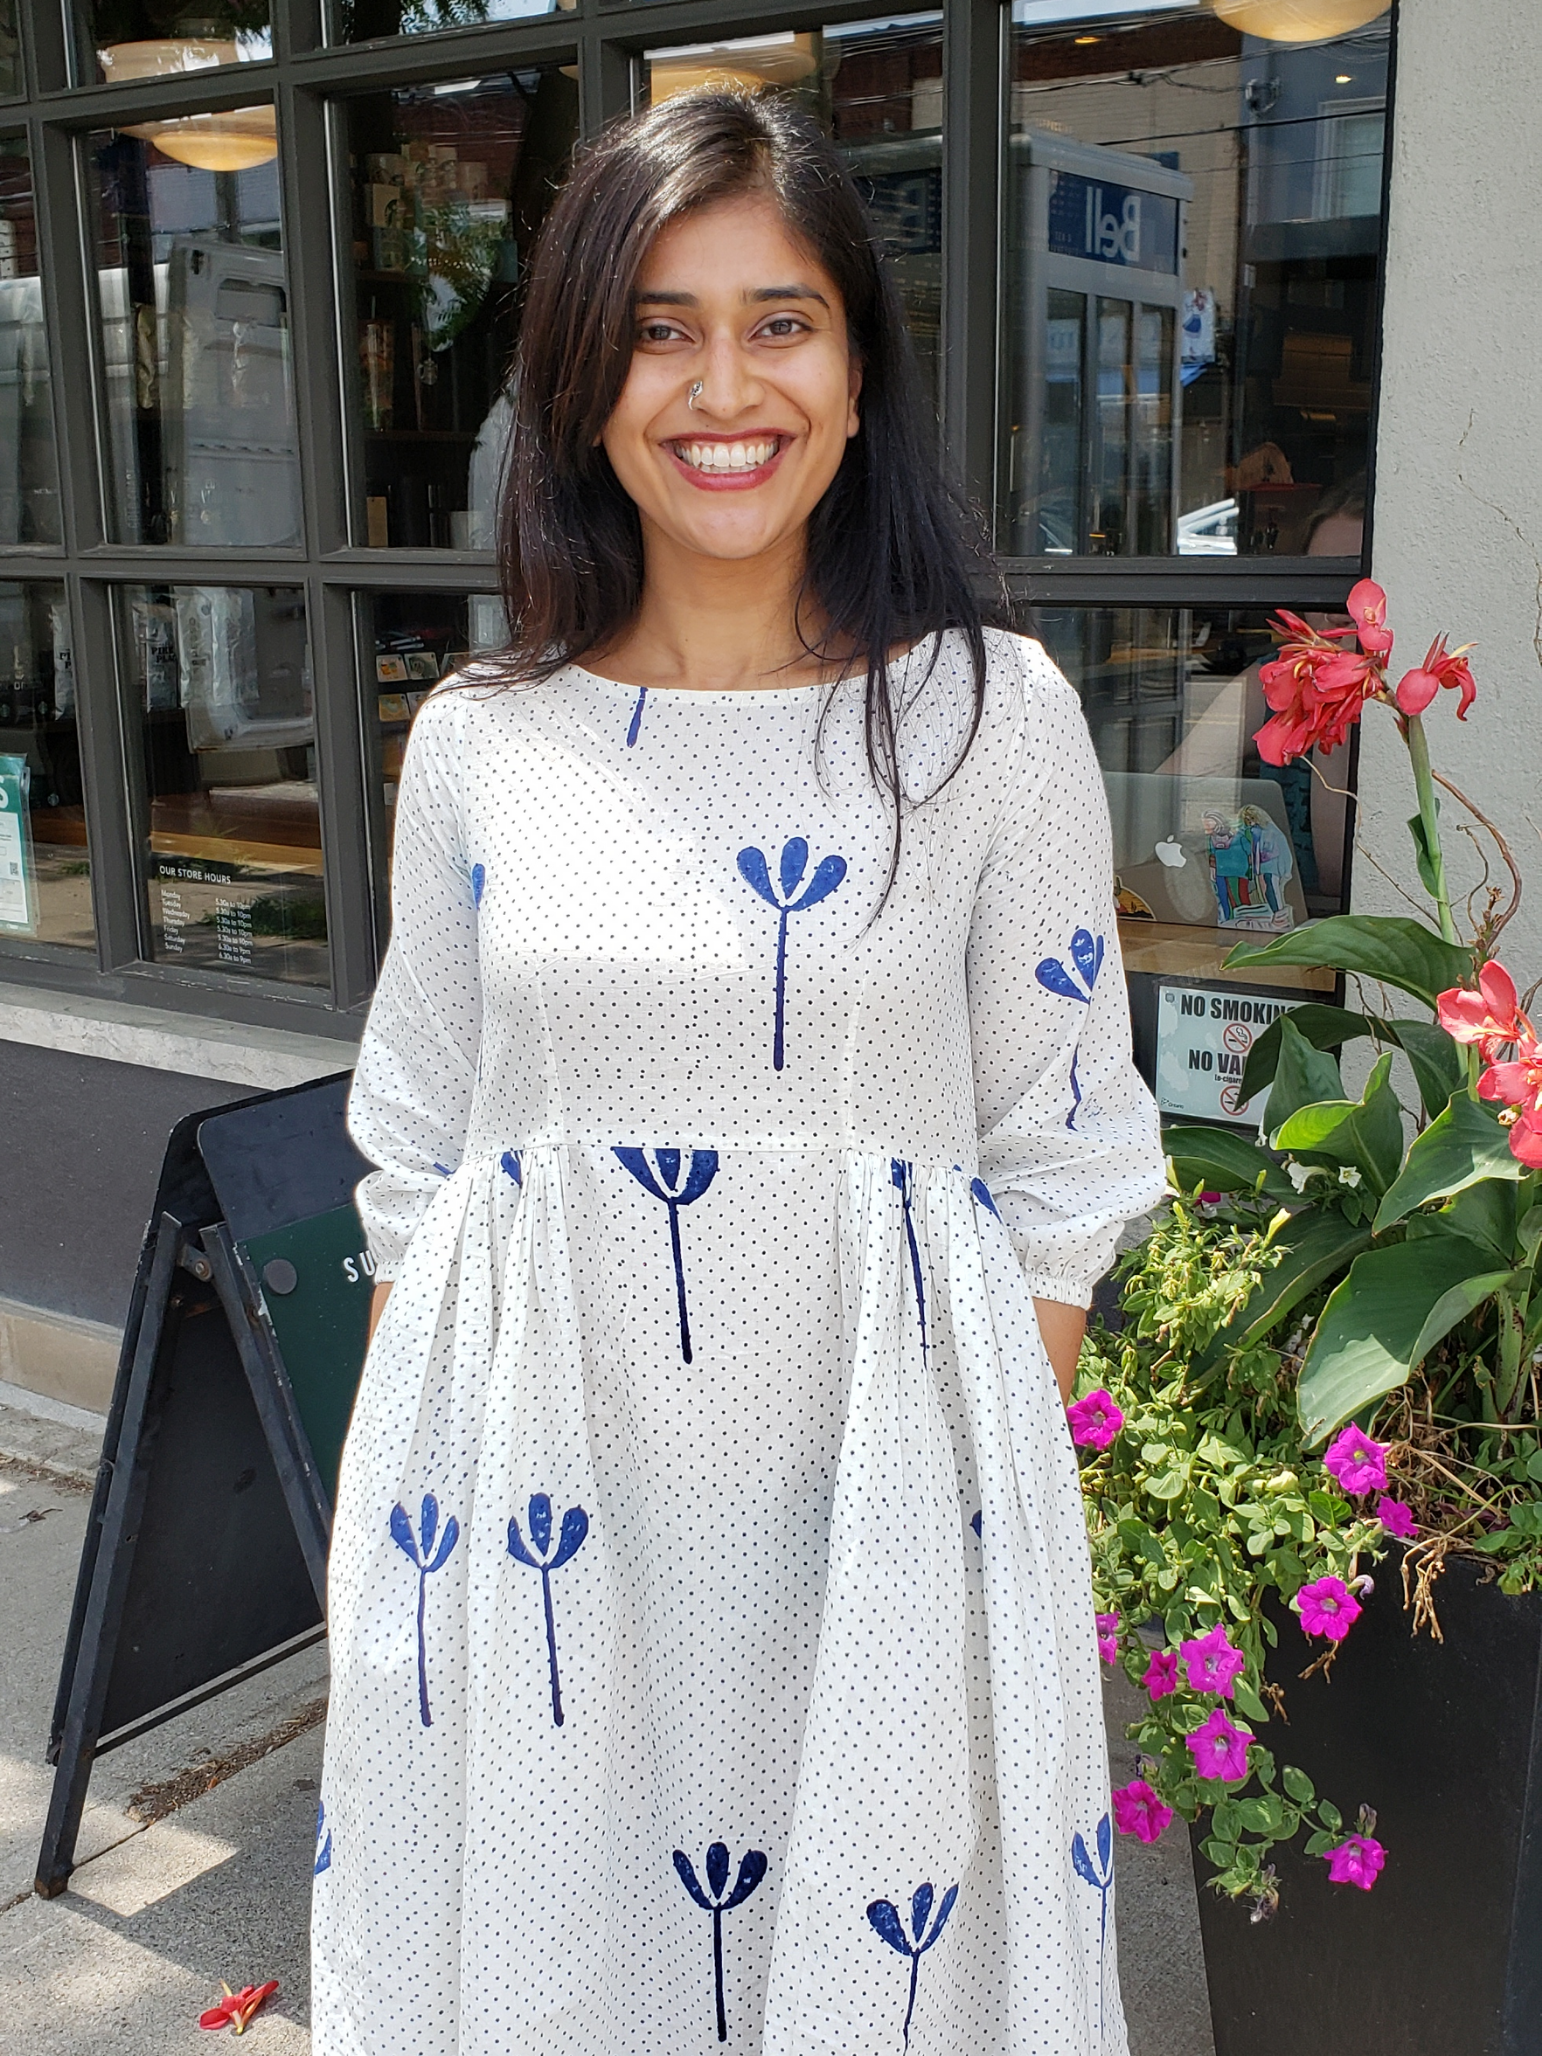 Kavita is on the sidewalk wearing a white dress posing outside a store/restaurant. Some red and purple flowers can be seen behind her. The glass windows of the store/restaurant reflect a bit of the opposite side of the street.